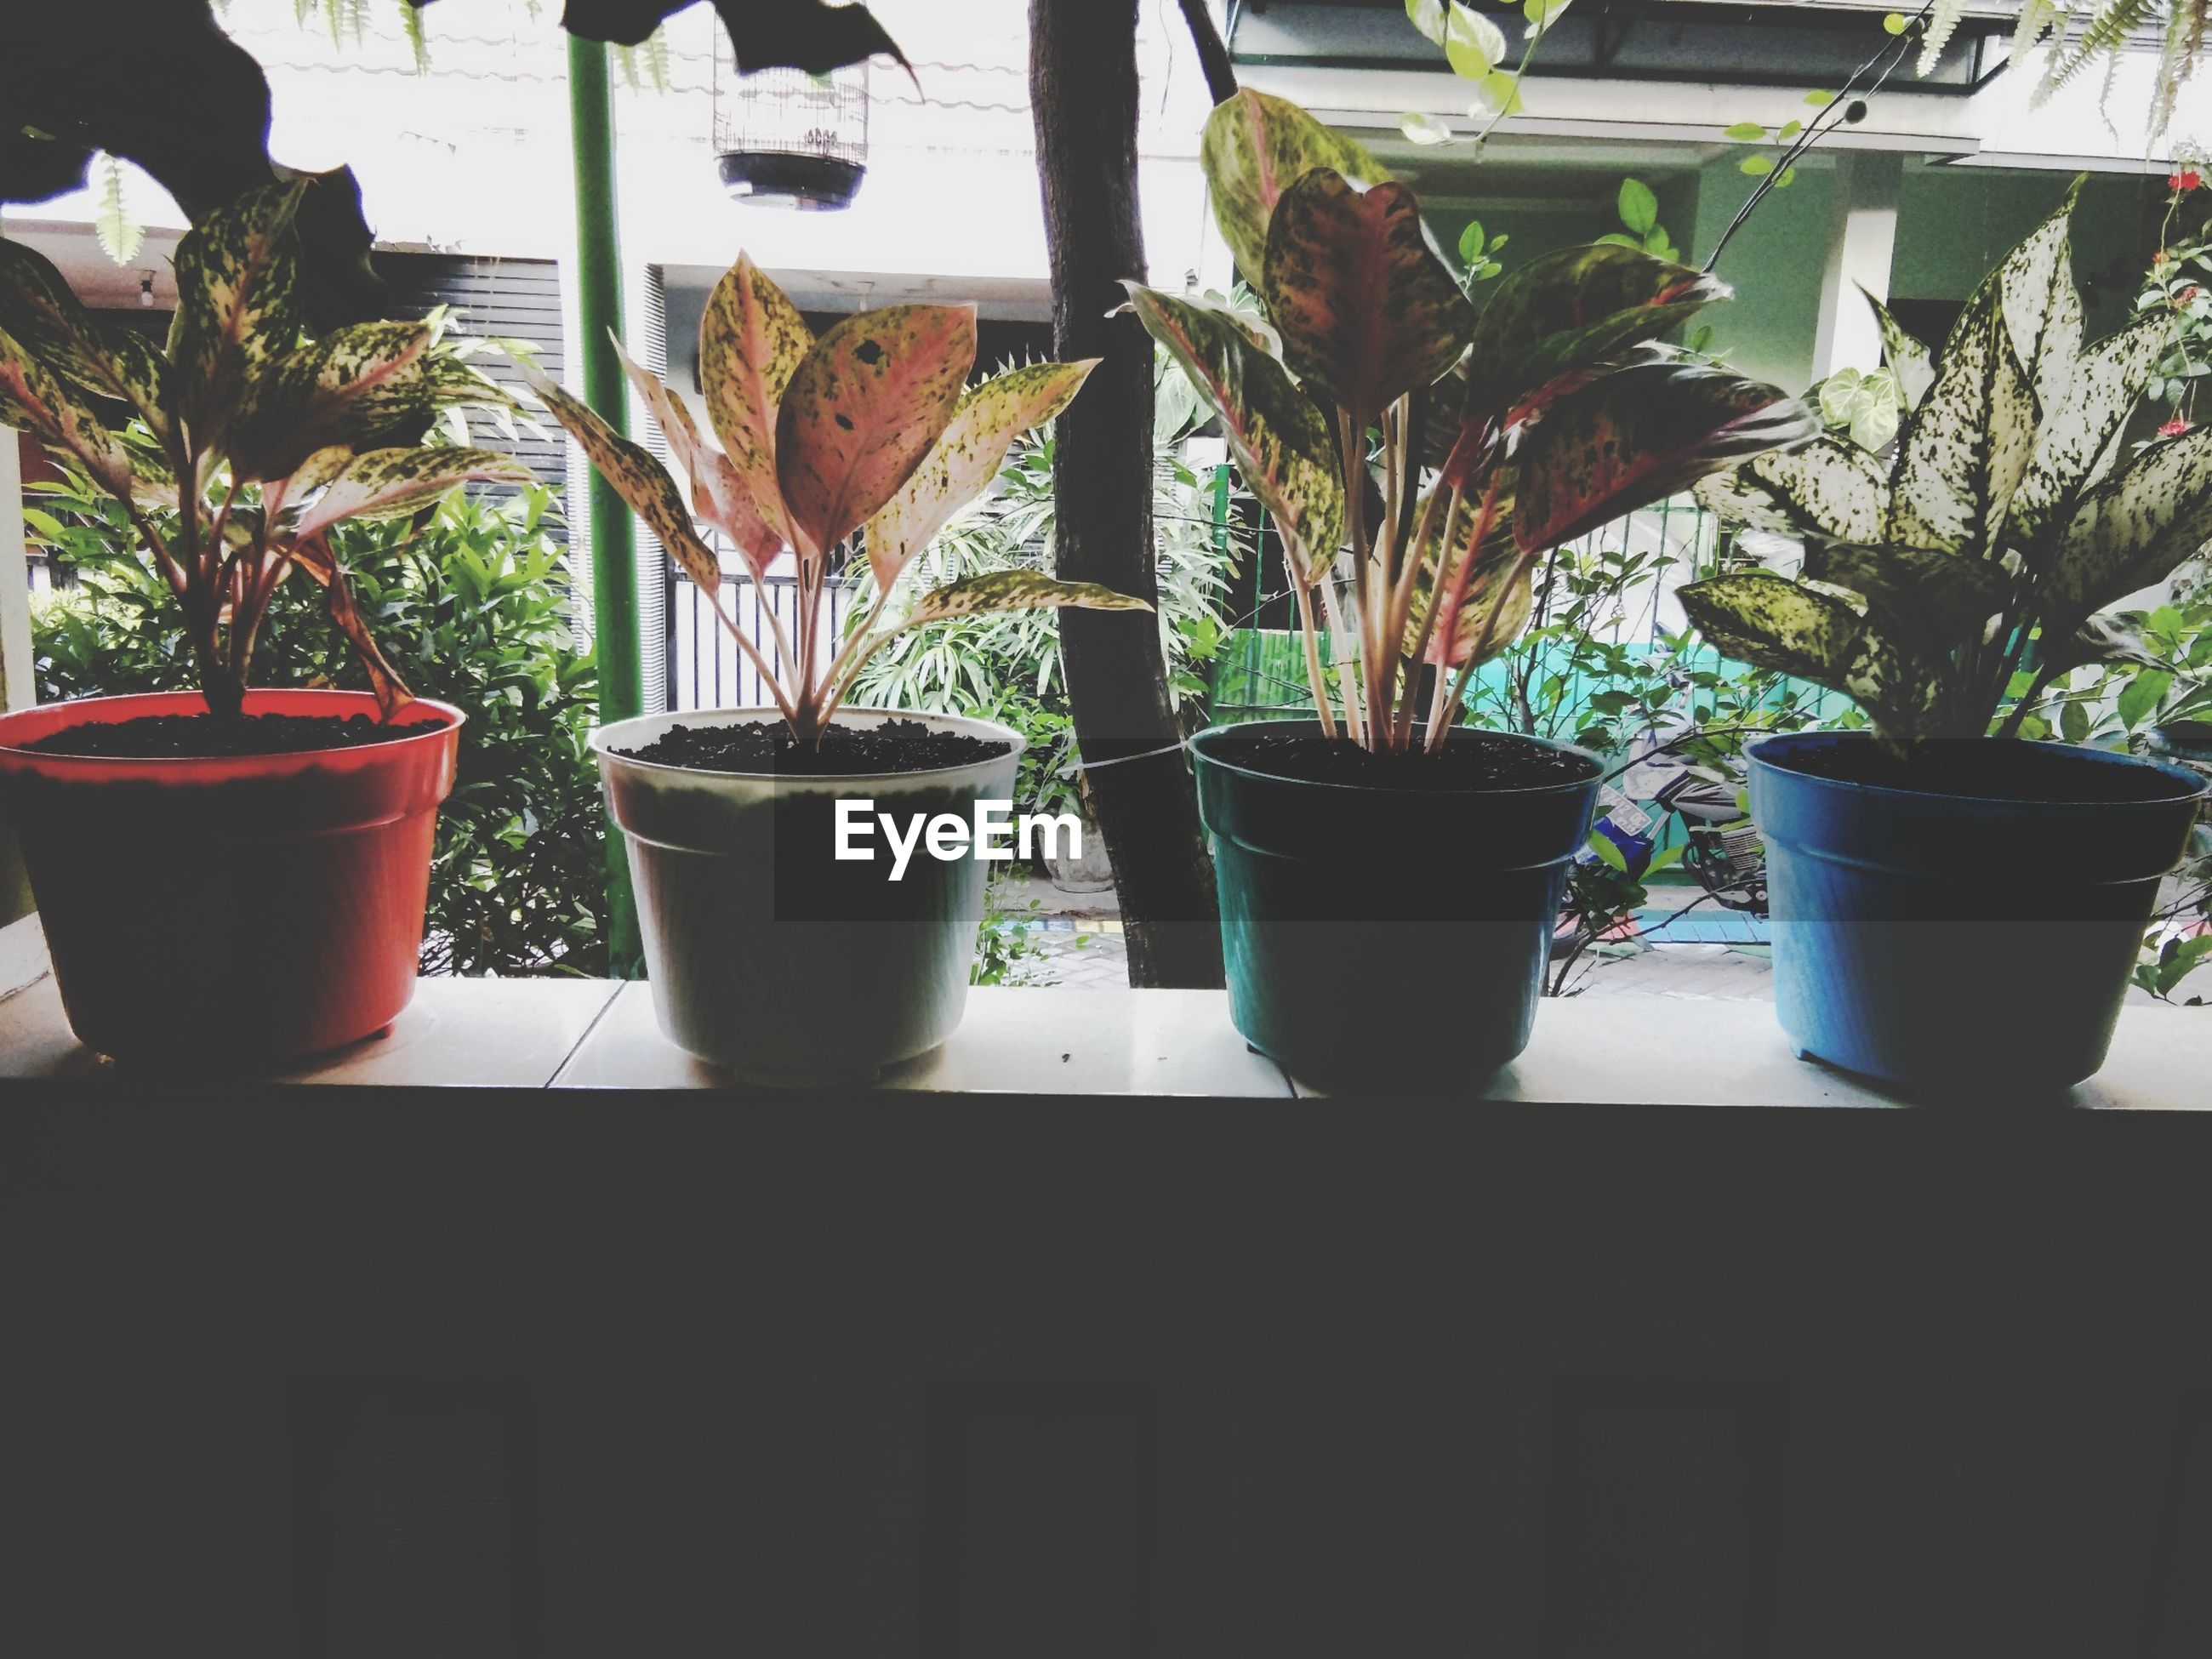 Potted plants arranged on window sill